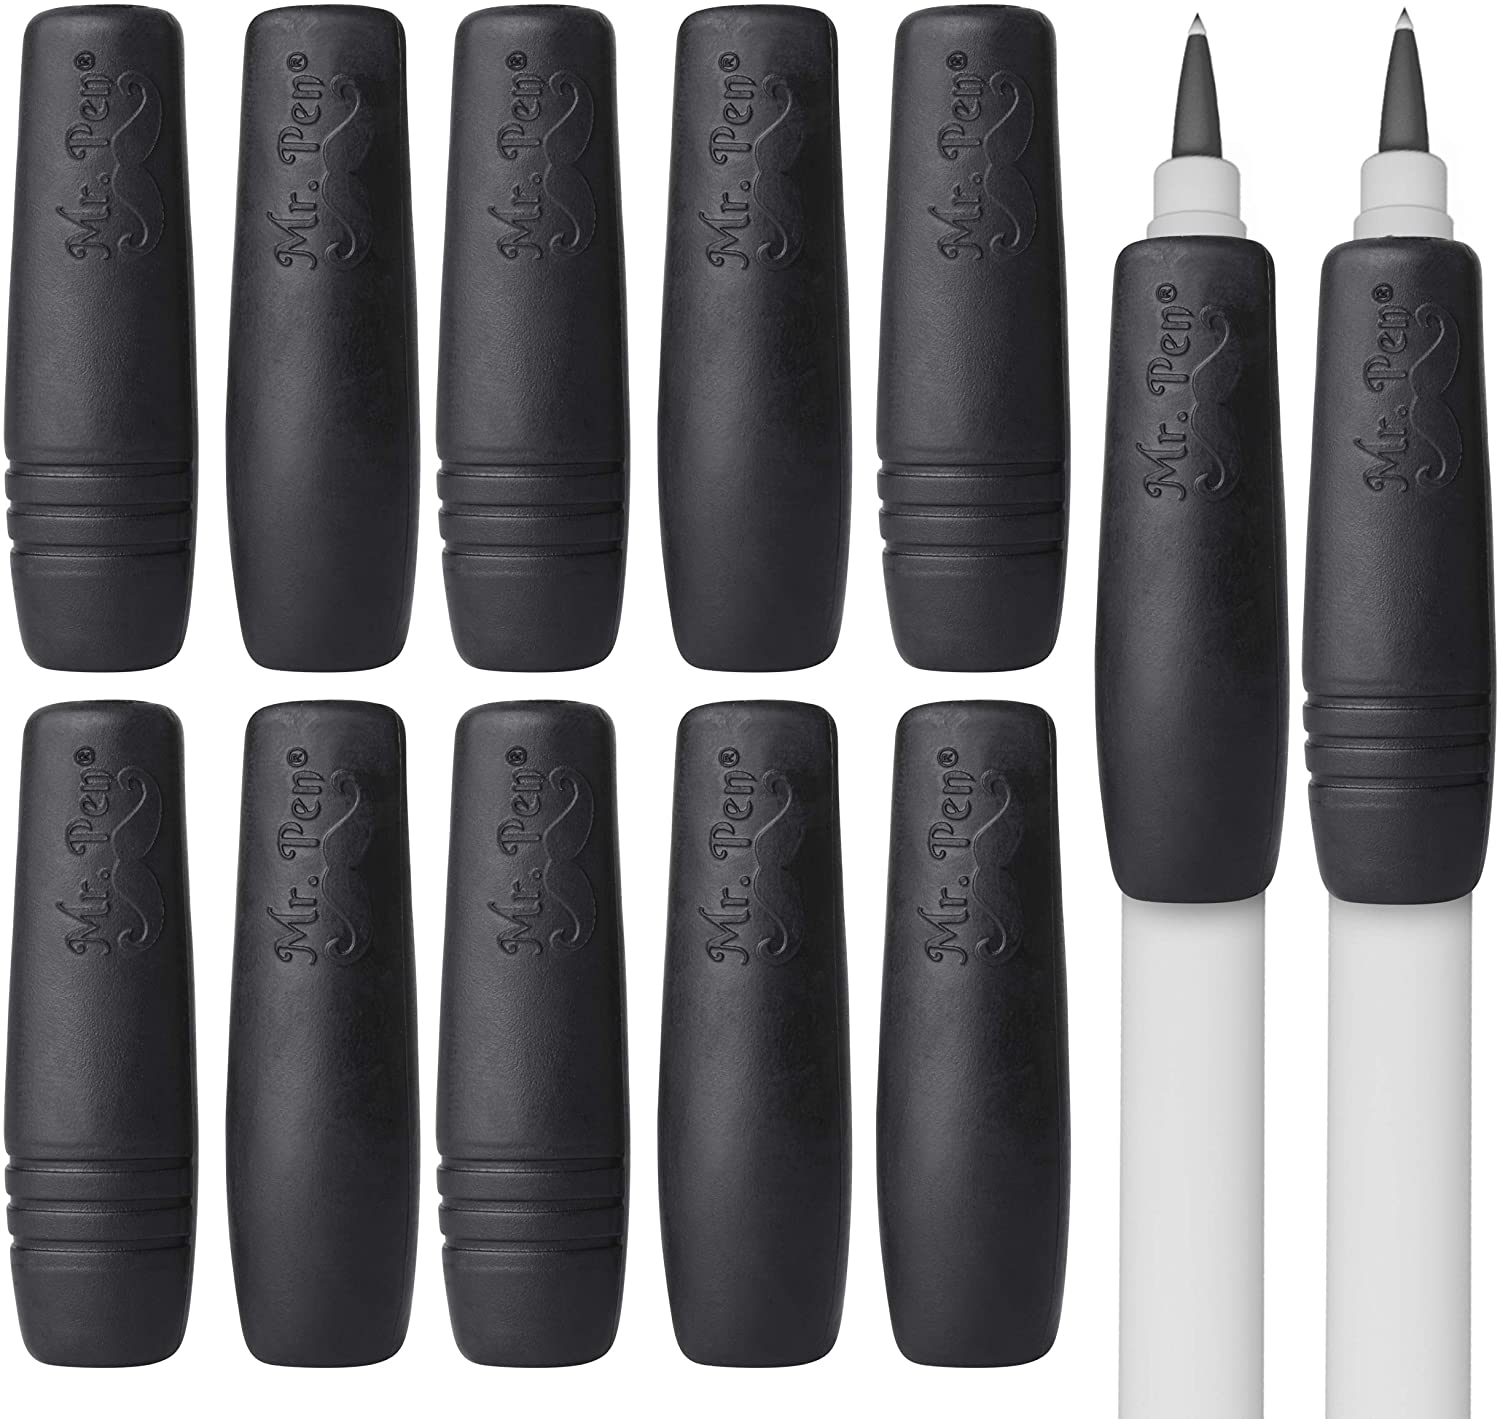 Mr. Pen- Pencil and Pen Grips, 12 Pack, Black, Pencil Grips for Adults, Rubber Pencil Grips, Pen Grips for Adults with Arthritis, Ergonomic Pencil Grip, Pen Gripper, Pencil Cushions for Writing